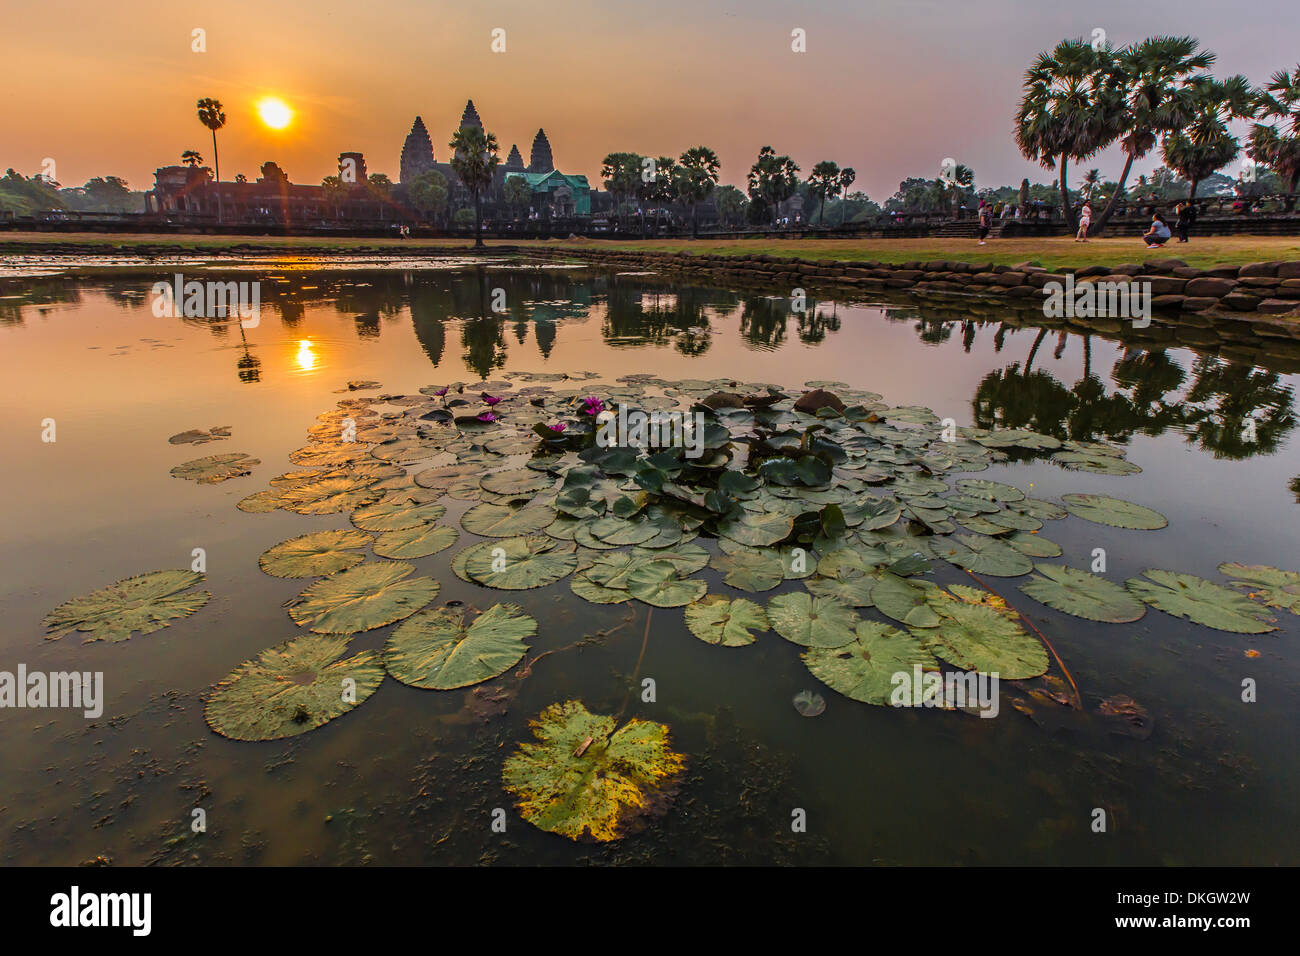 Sunrise over Angkor Wat, Angkor, UNESCO World Heritage Site, Siem Reap Province, Cambodia, Indochina, Southeast Asia, Asia - Stock Image